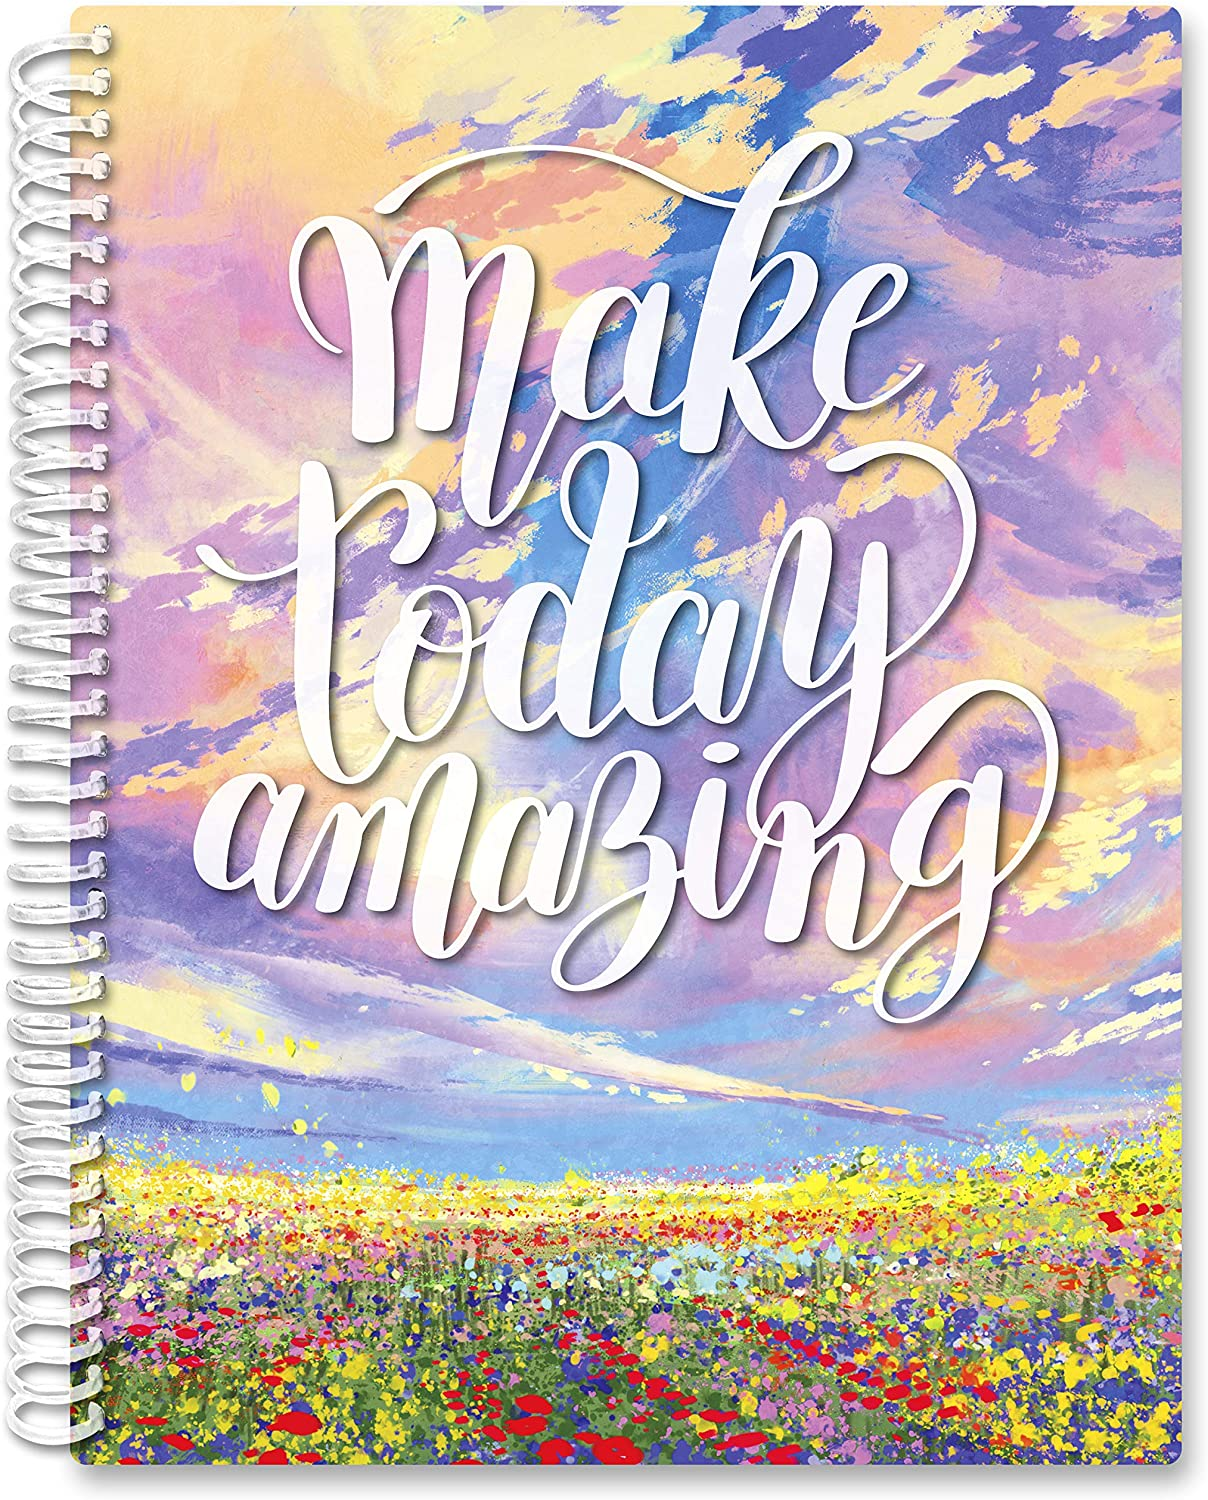 2021 Calendar Year Softcover Planner - 8.5 x 11 - Make Today Amazing